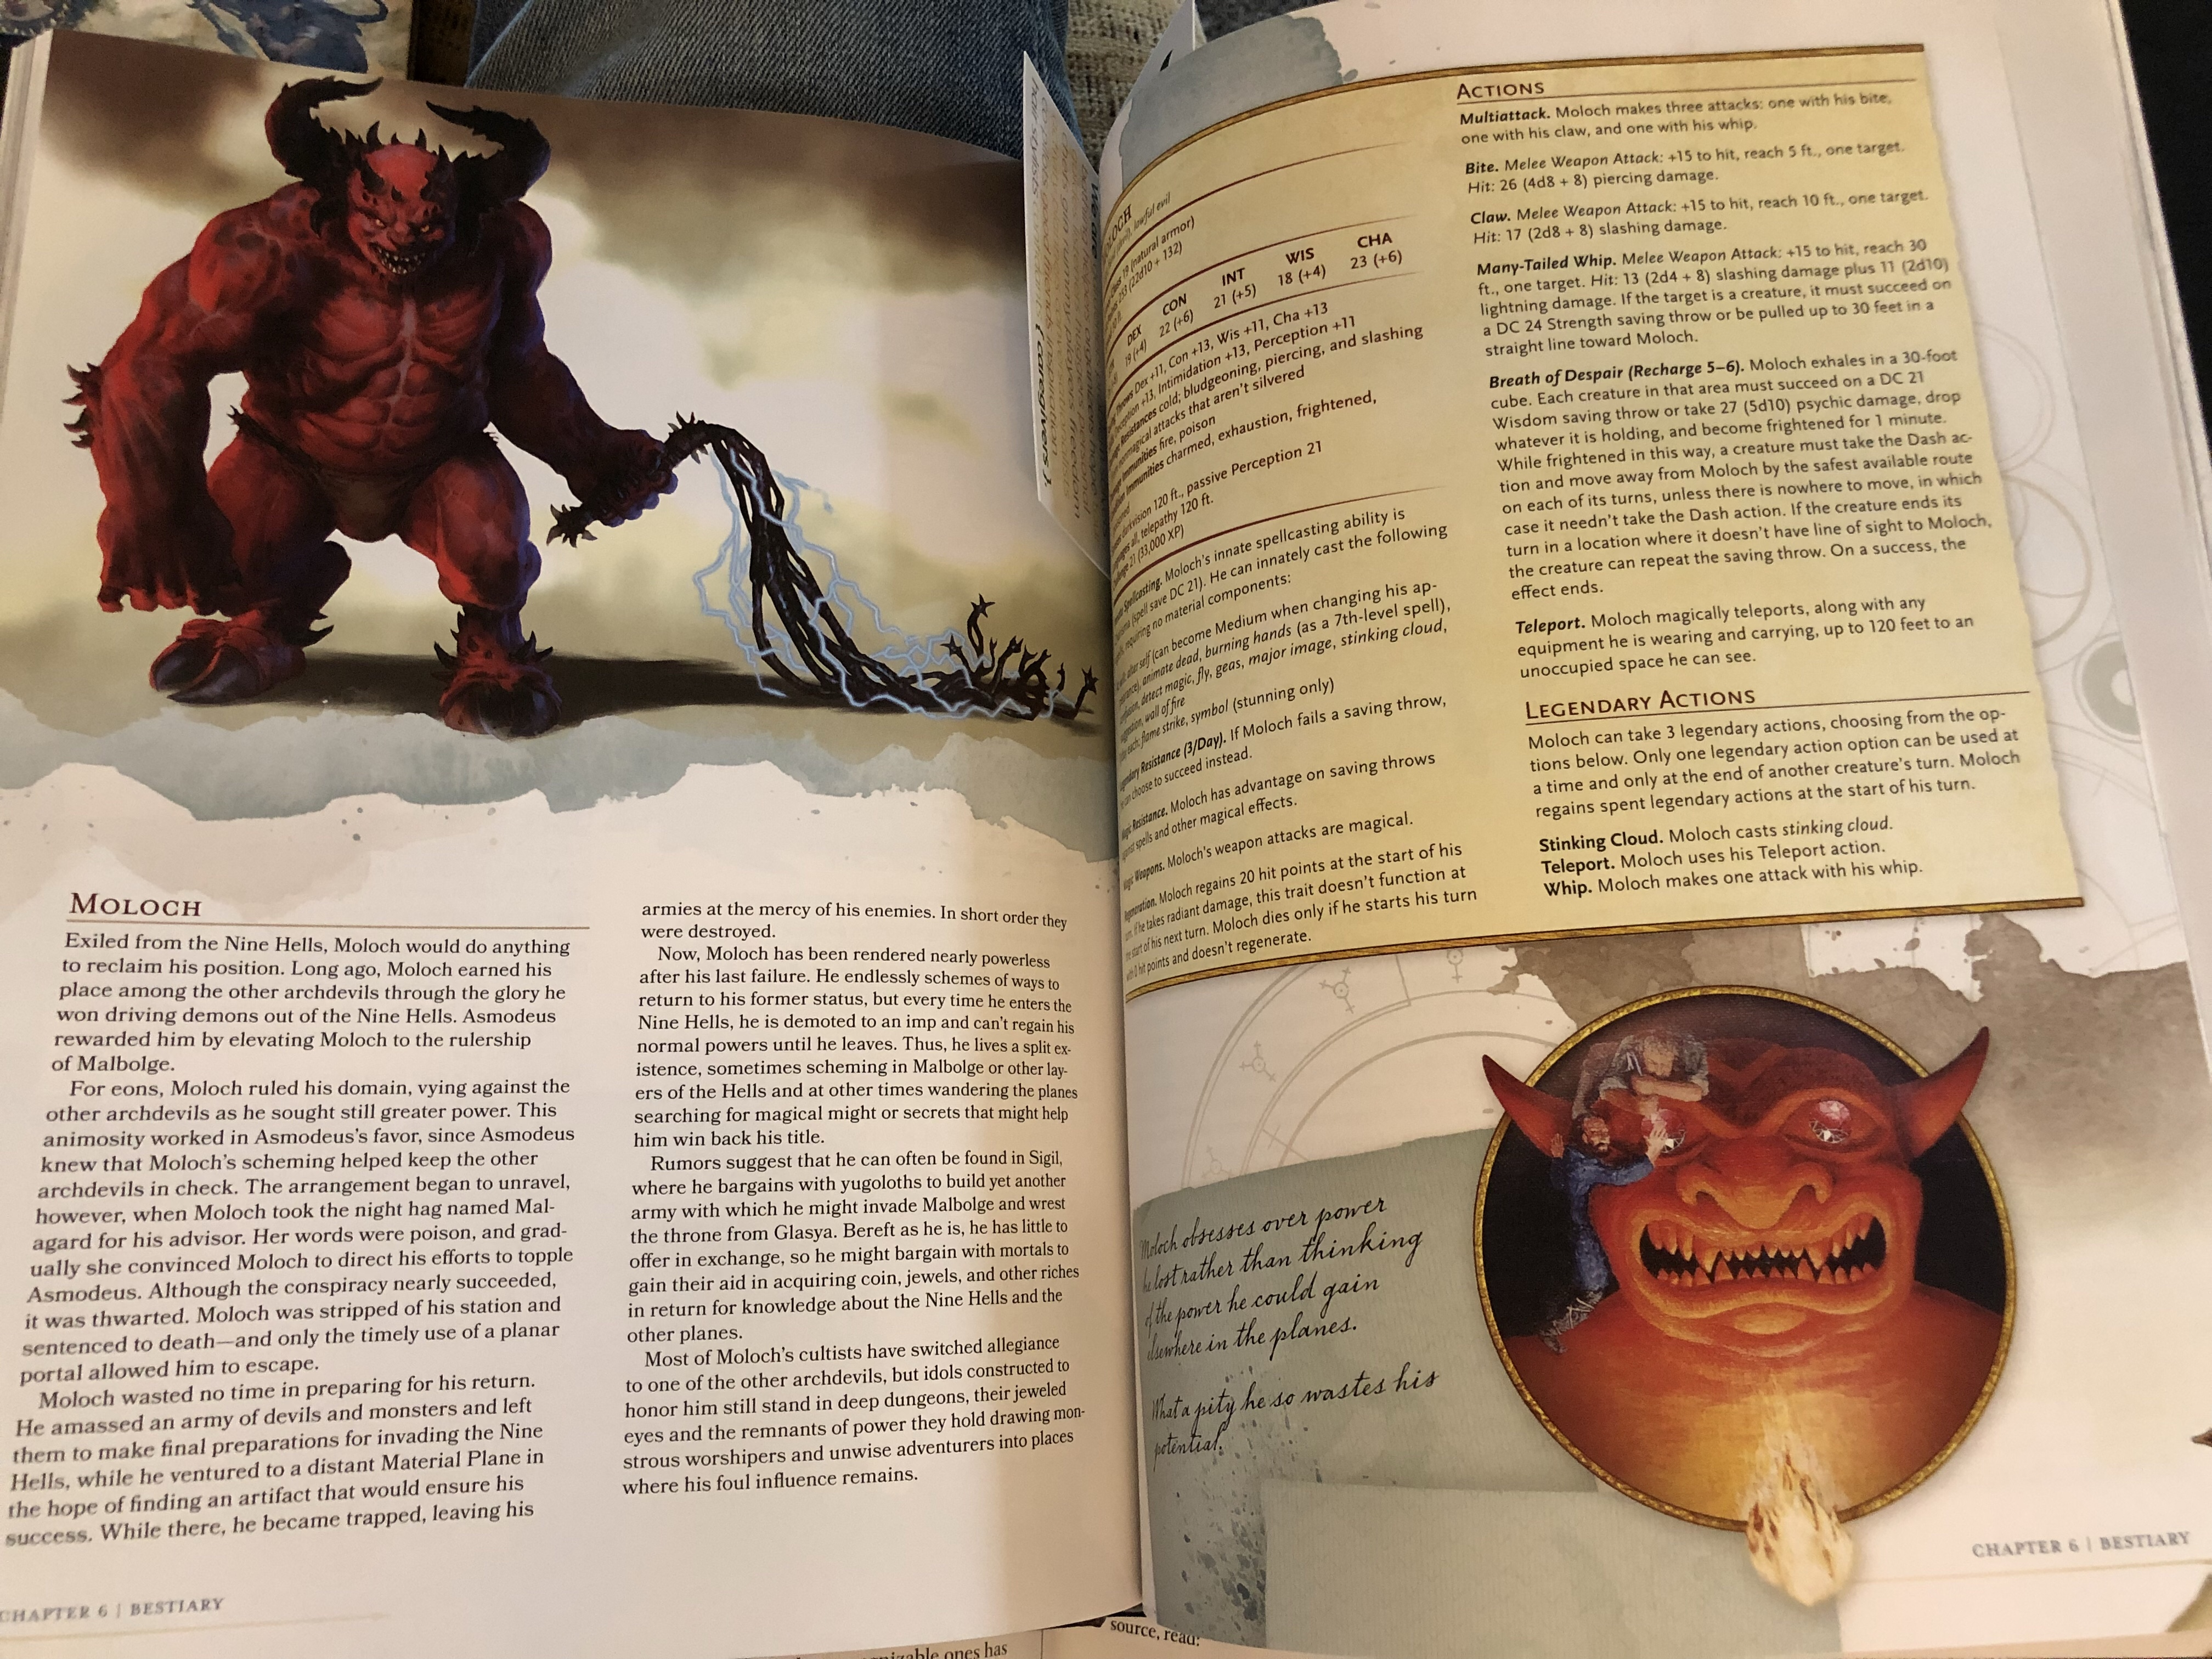 Savaging Icrpg Plus The Eidolon Of Moloch Adventure Visions Of